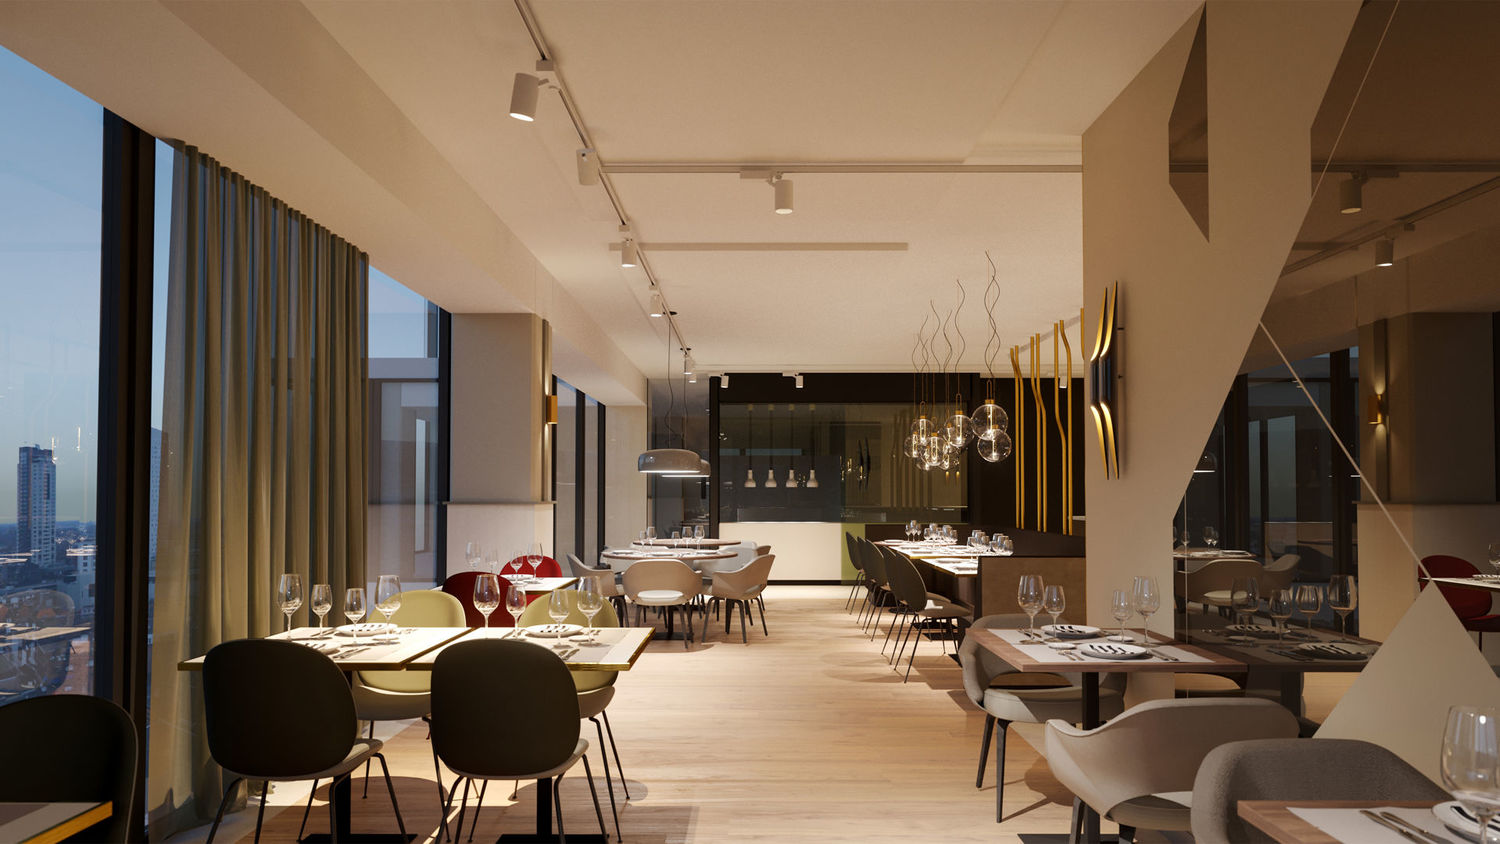 Nh collection hotel eindhoven holland for Designhotel holland